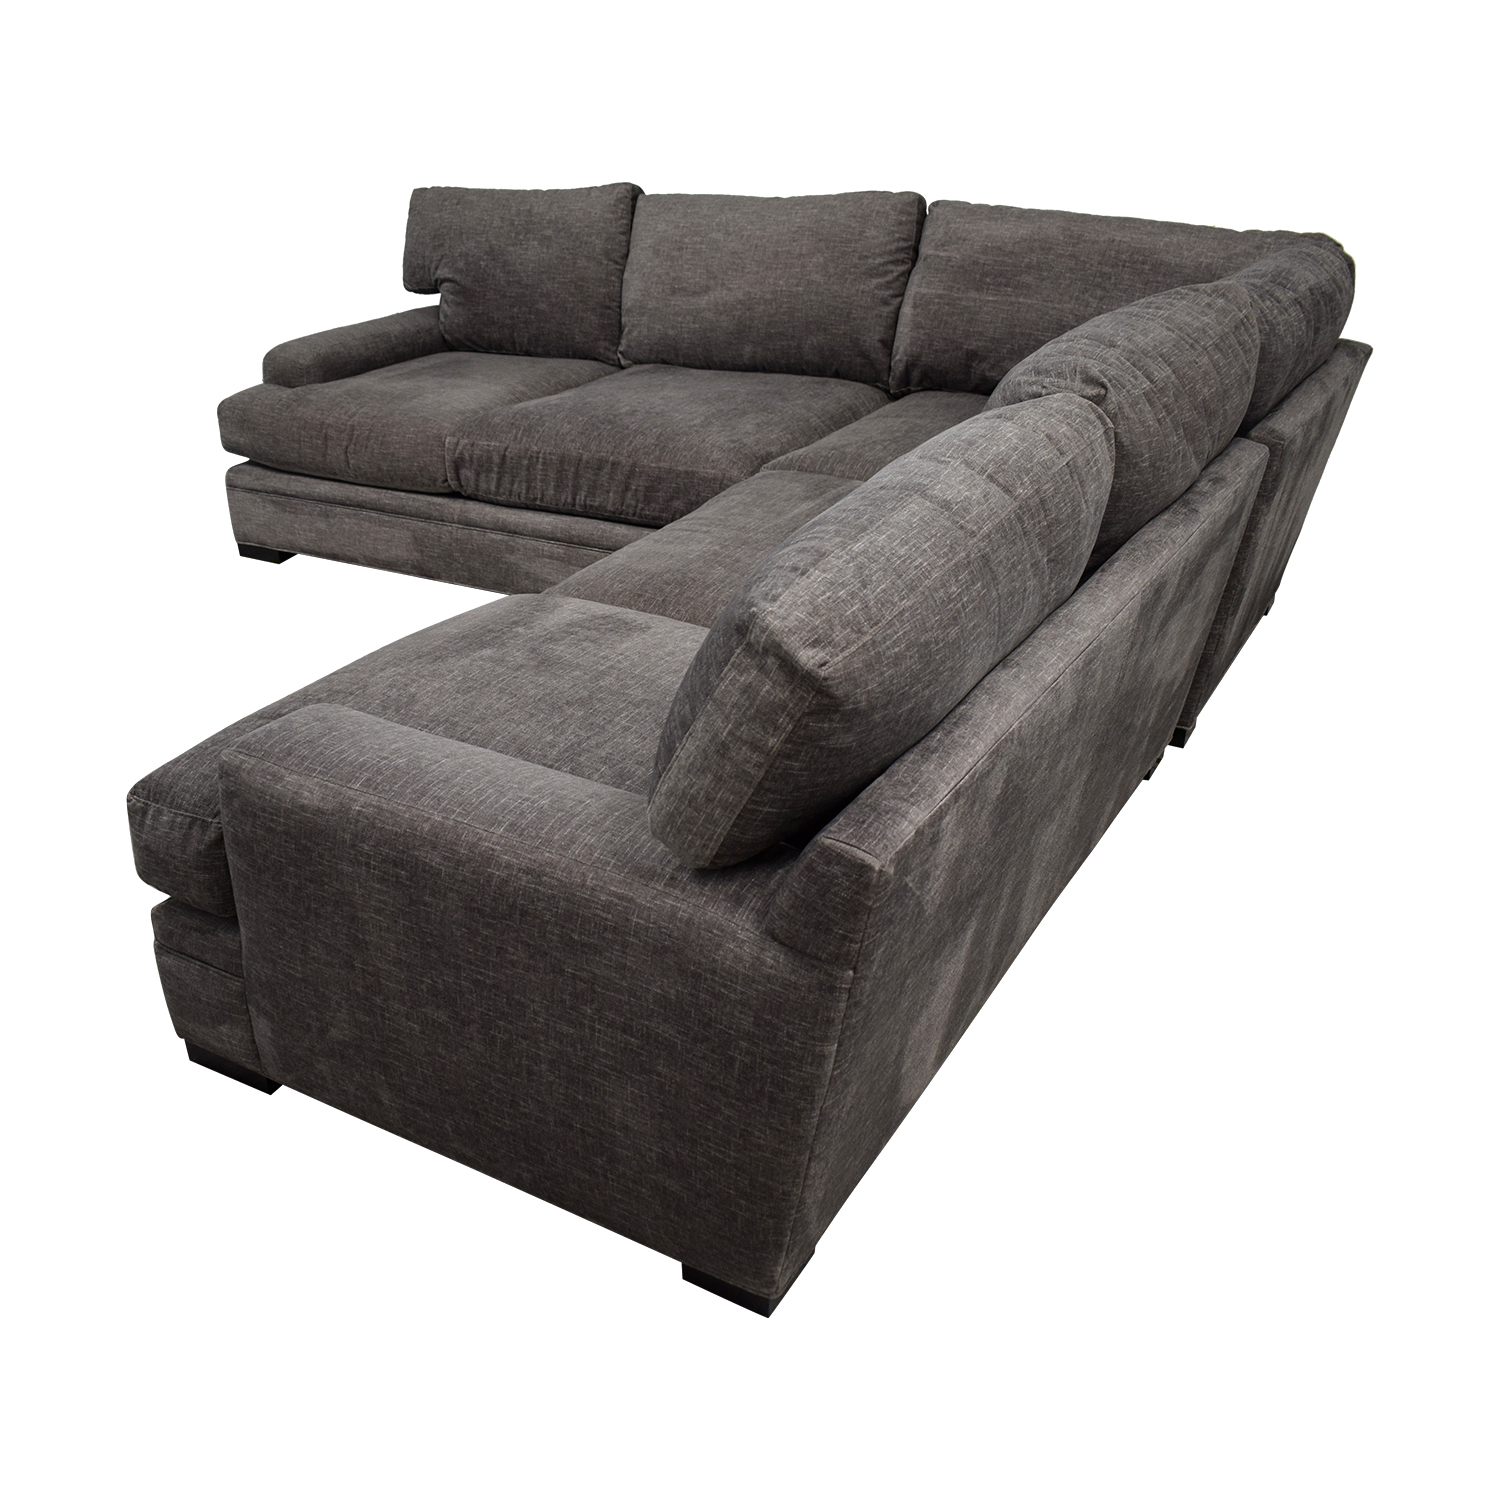 Raymour & Flanigan Raymour & Flanigan Cindy Crawford Grey L-Shaped Sectional discount